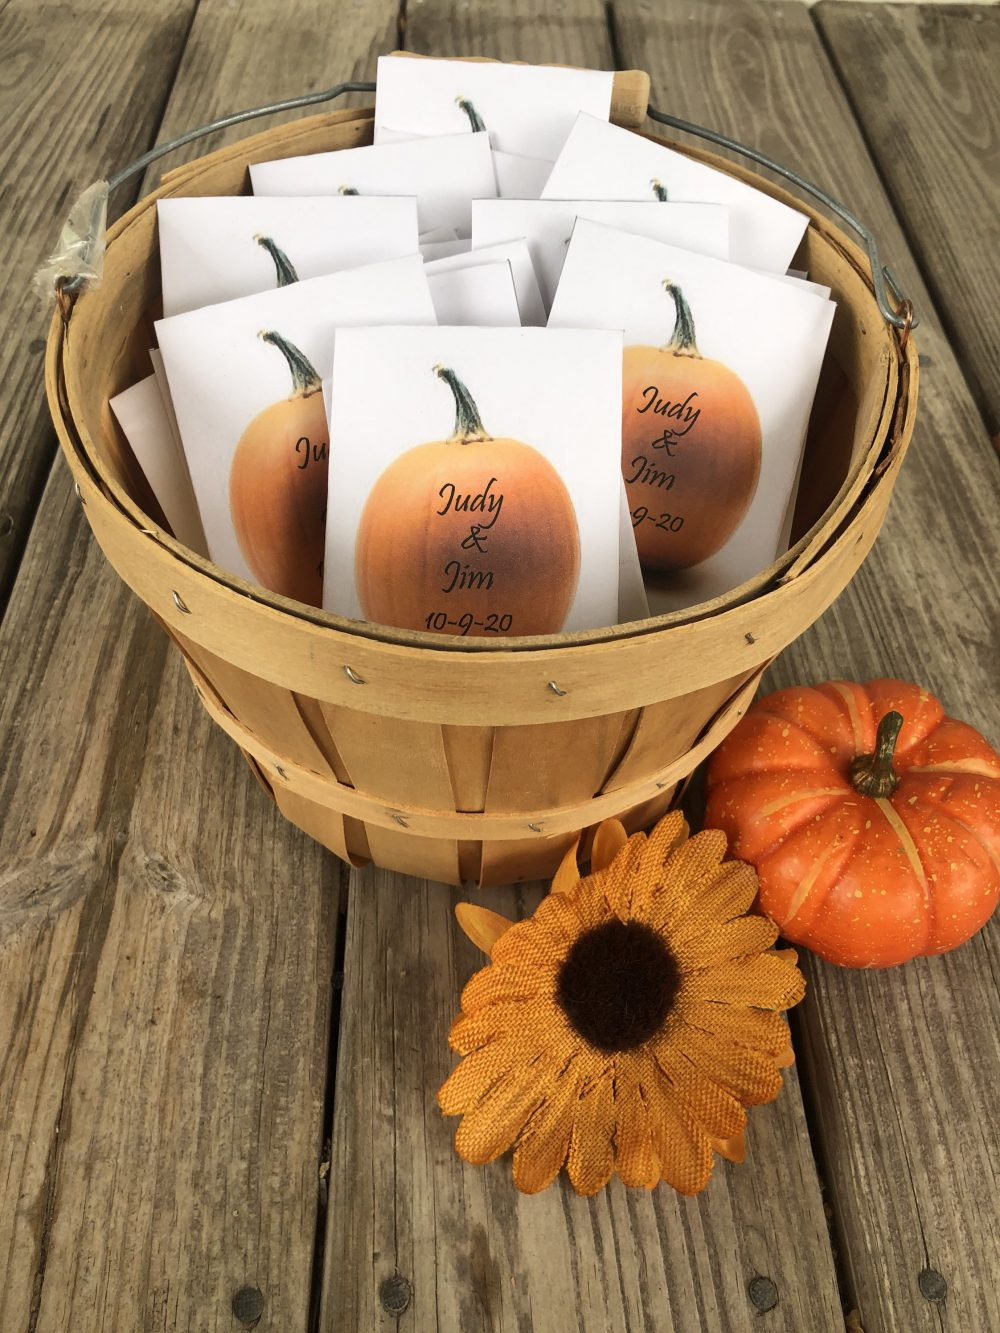 50 Custom Fall Wedding Seed Packet Favors, Pumpkin Wedding Favors, Fall Autumn Orange Pumpkin Favors